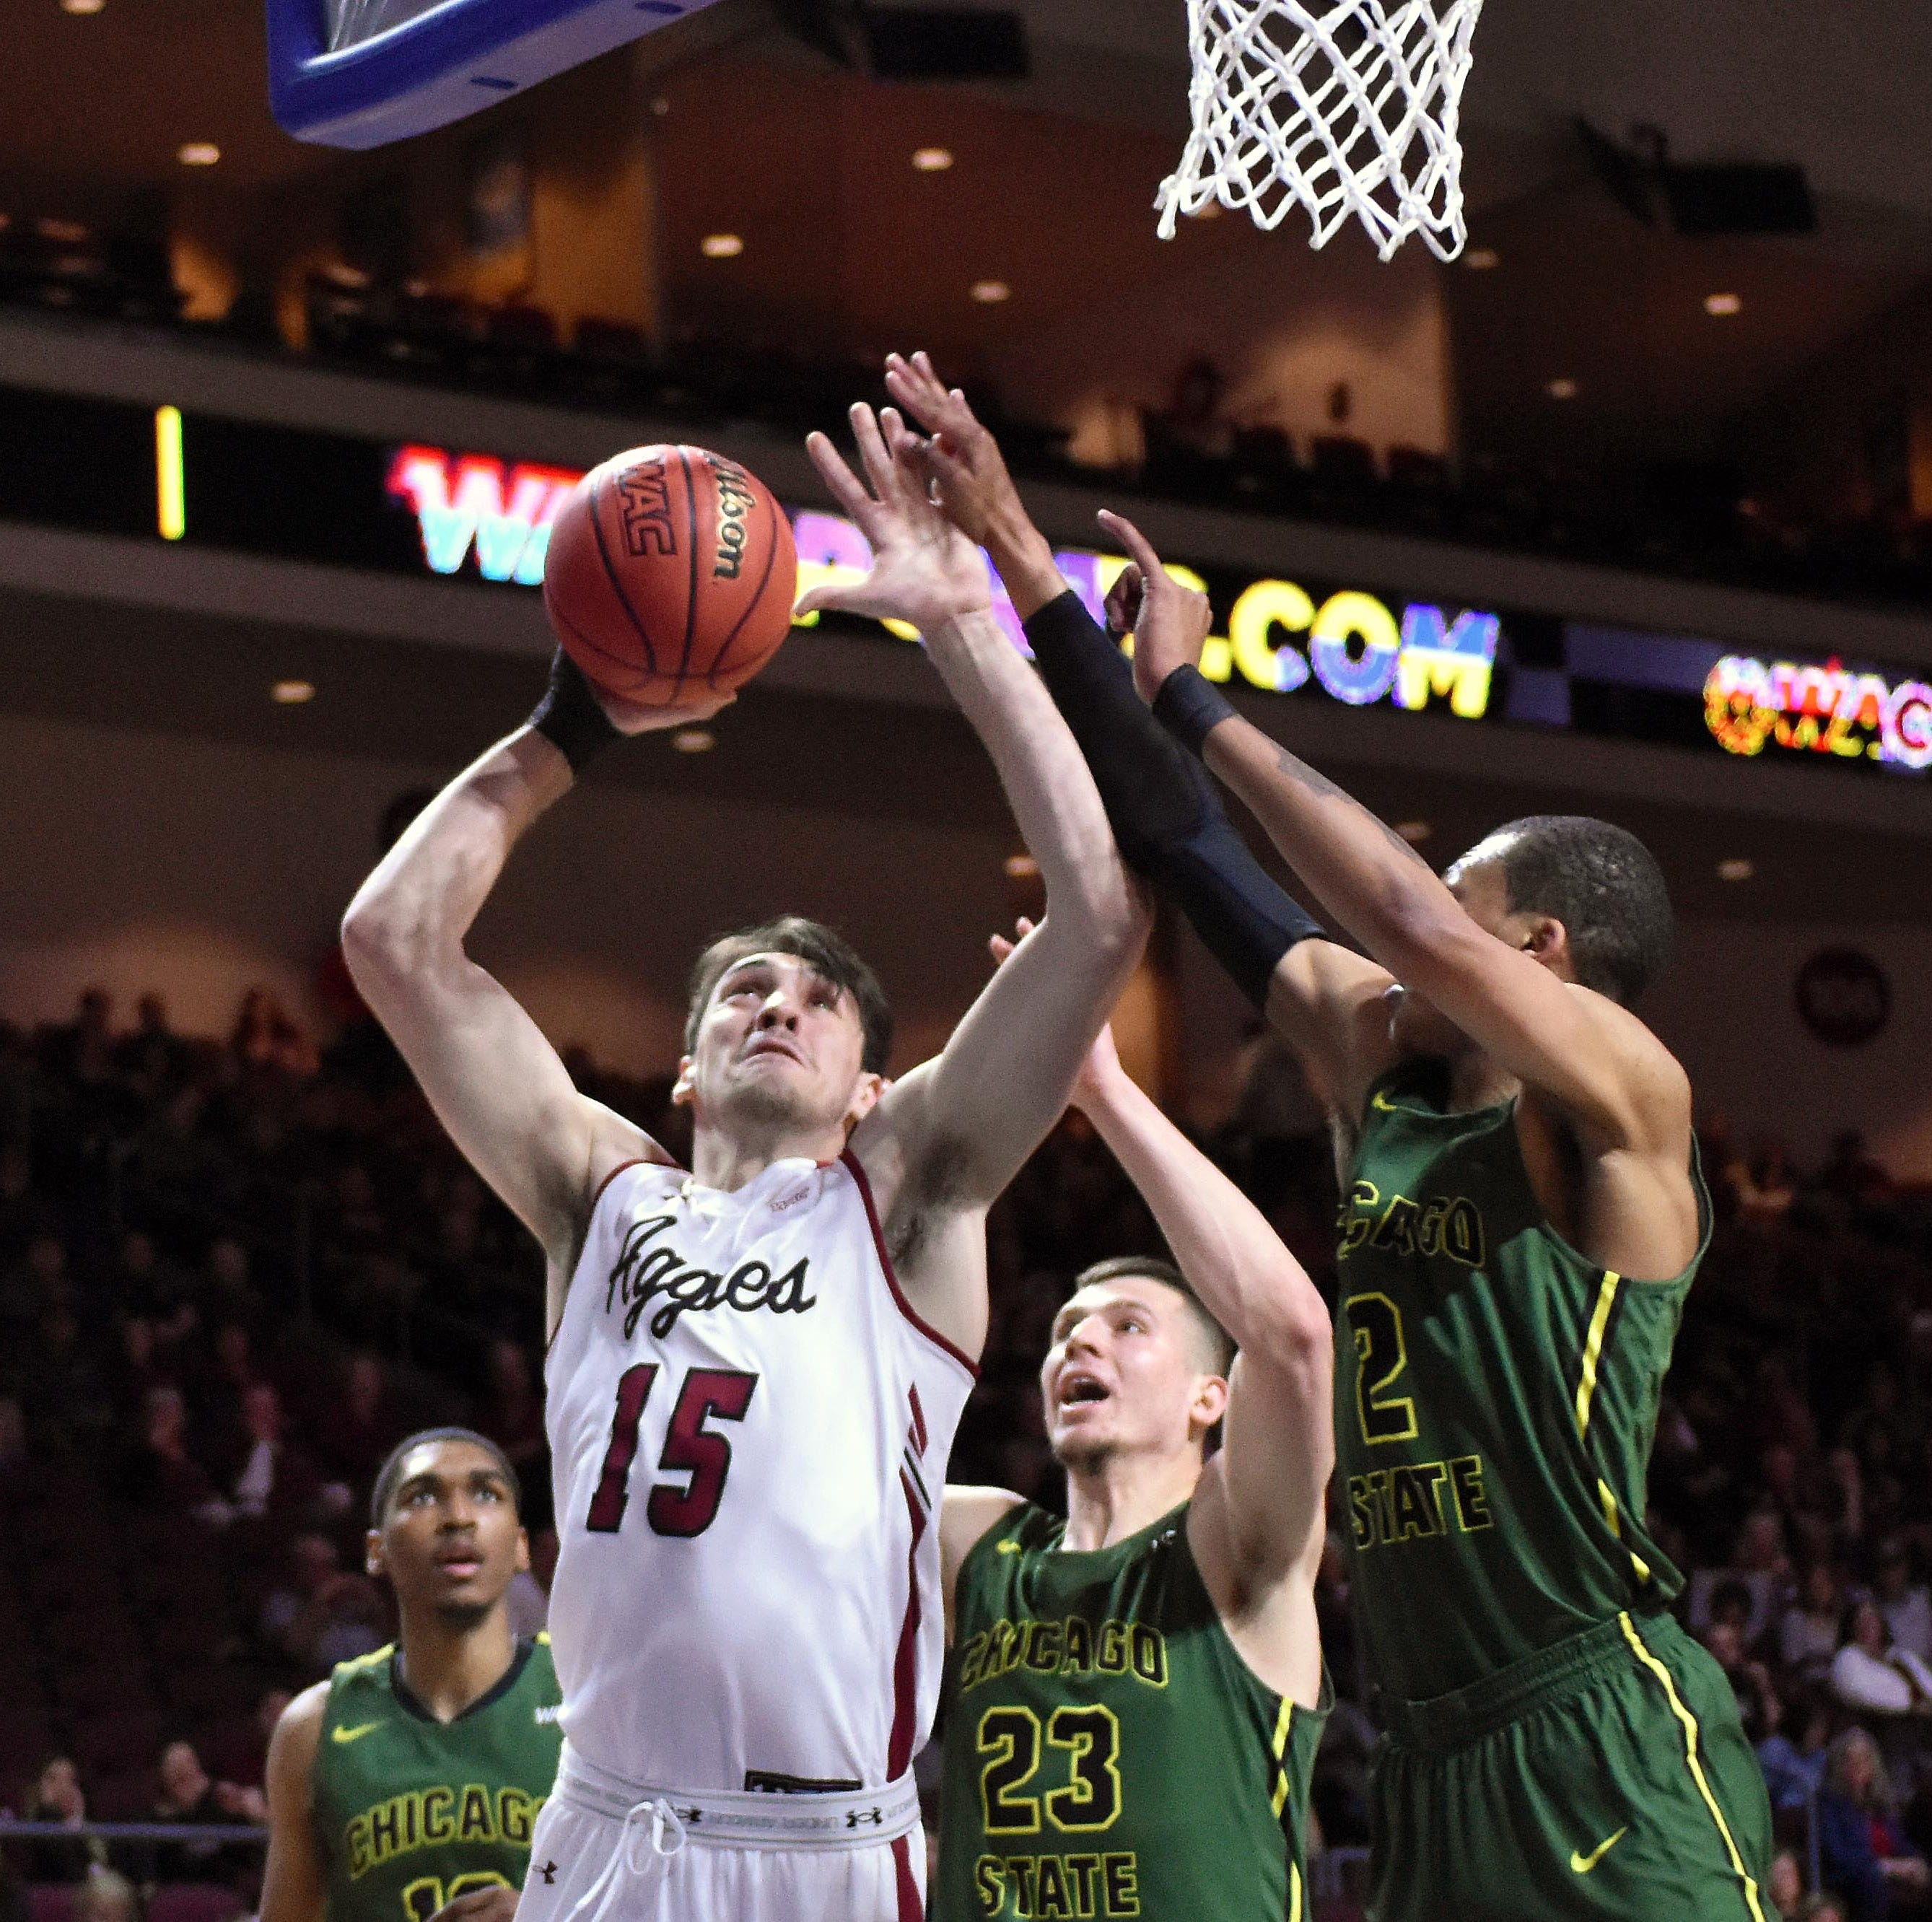 New Mexico State vs. Texas Rio Grande Valley: What to watch in WAC Tournament semifinals